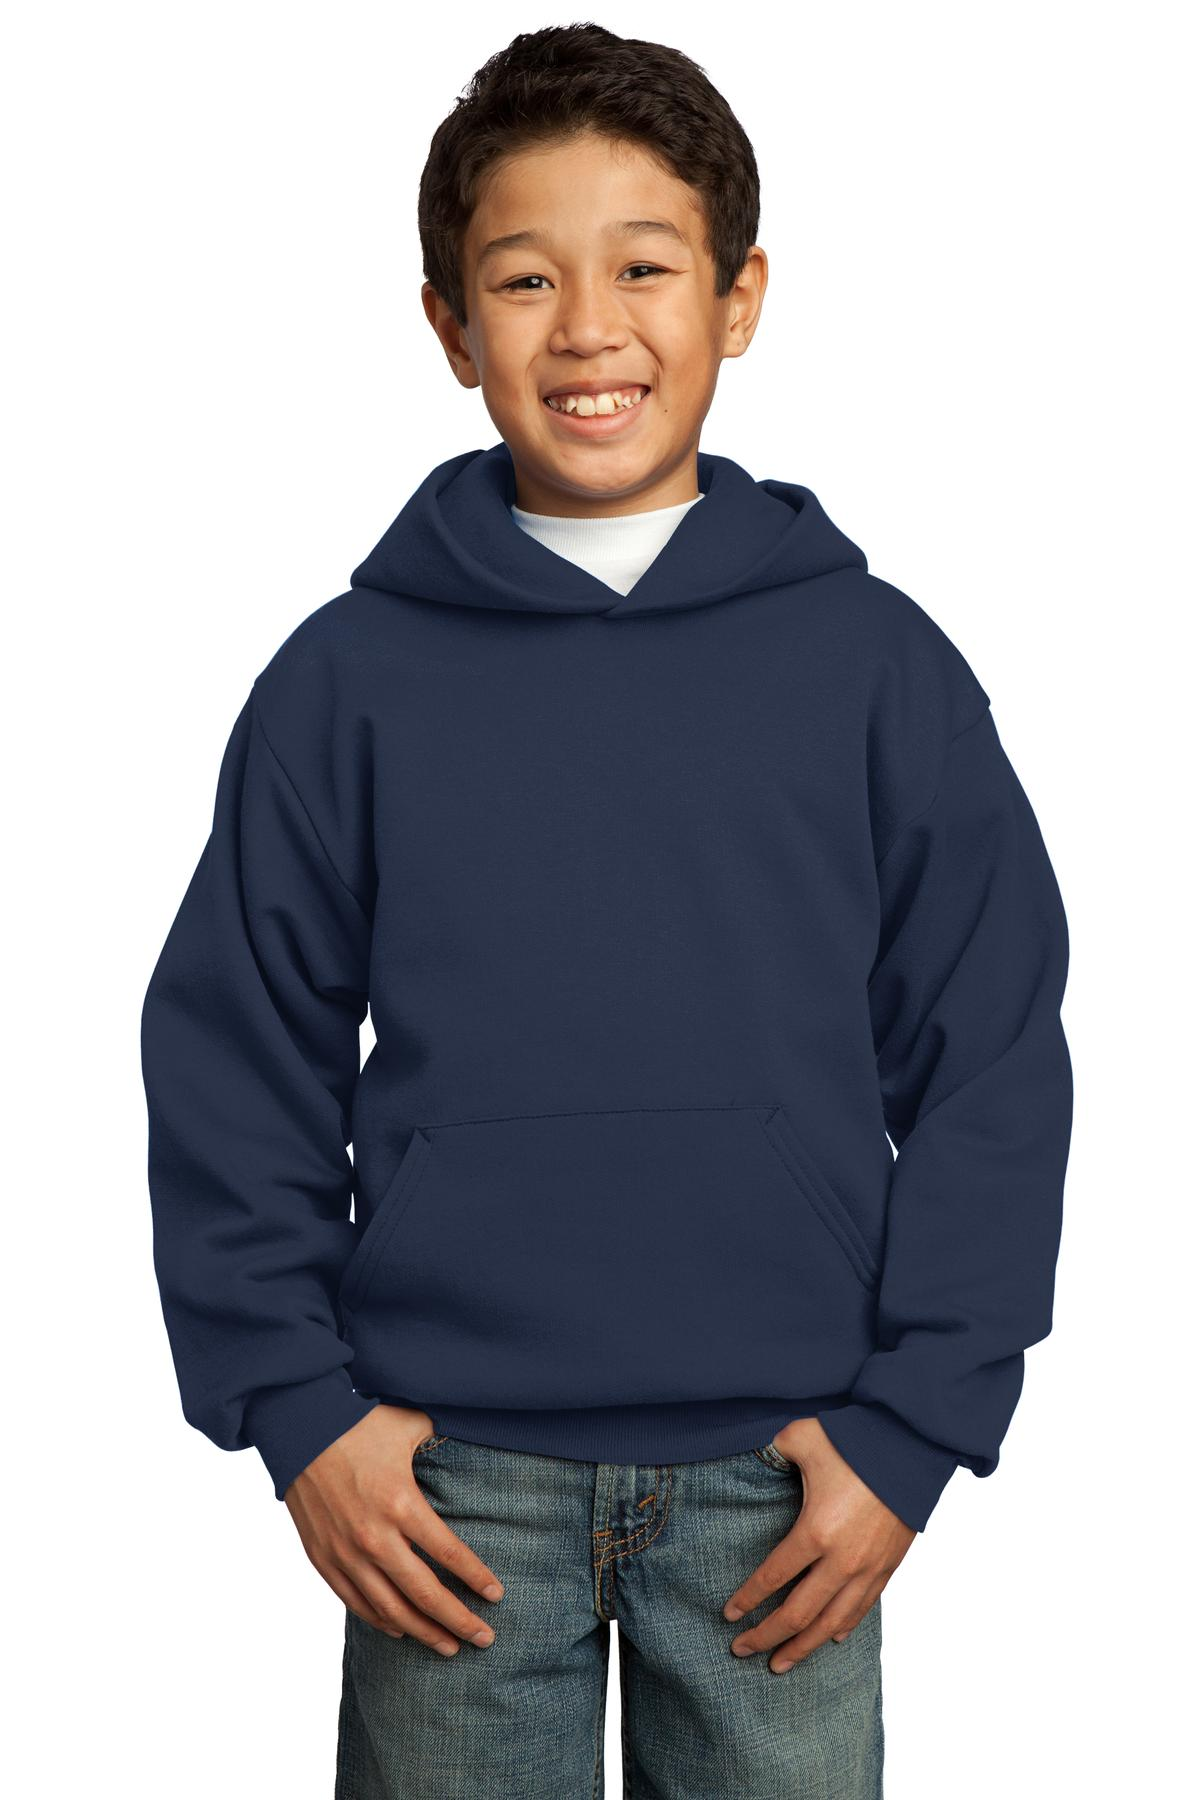 Navy Port & Company - Youth Core Fleece Pullover Hooded Sweatshirt.